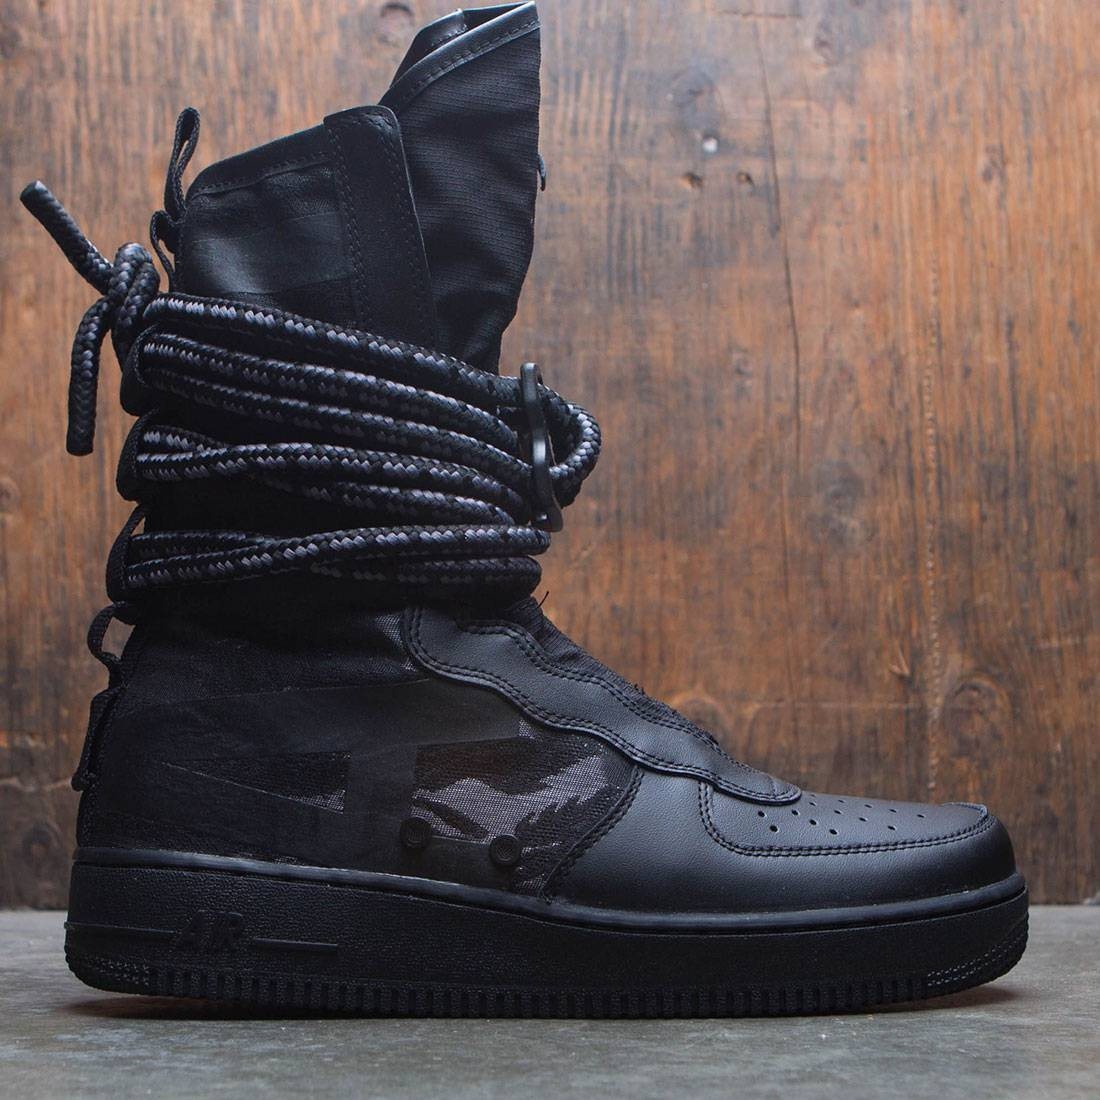 new style 3a382 7a7ac nike men sf air force 1 hi boot black black dark grey